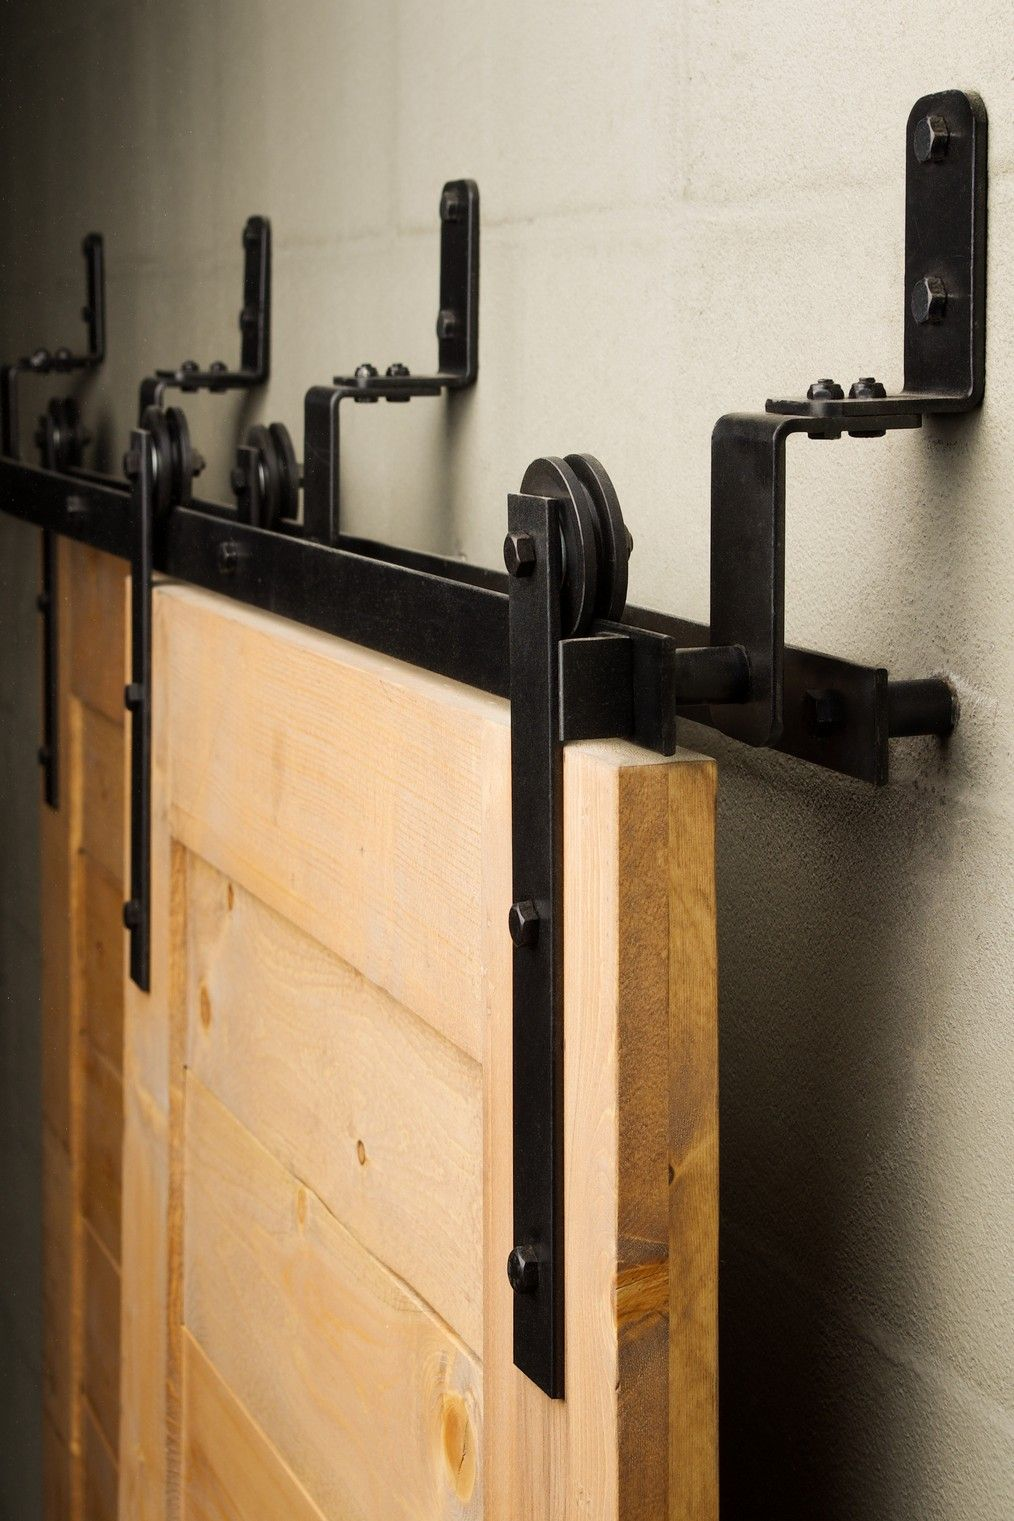 The Bypass Sliding Barn Door Hardware Is Efficient In Tight Spaces